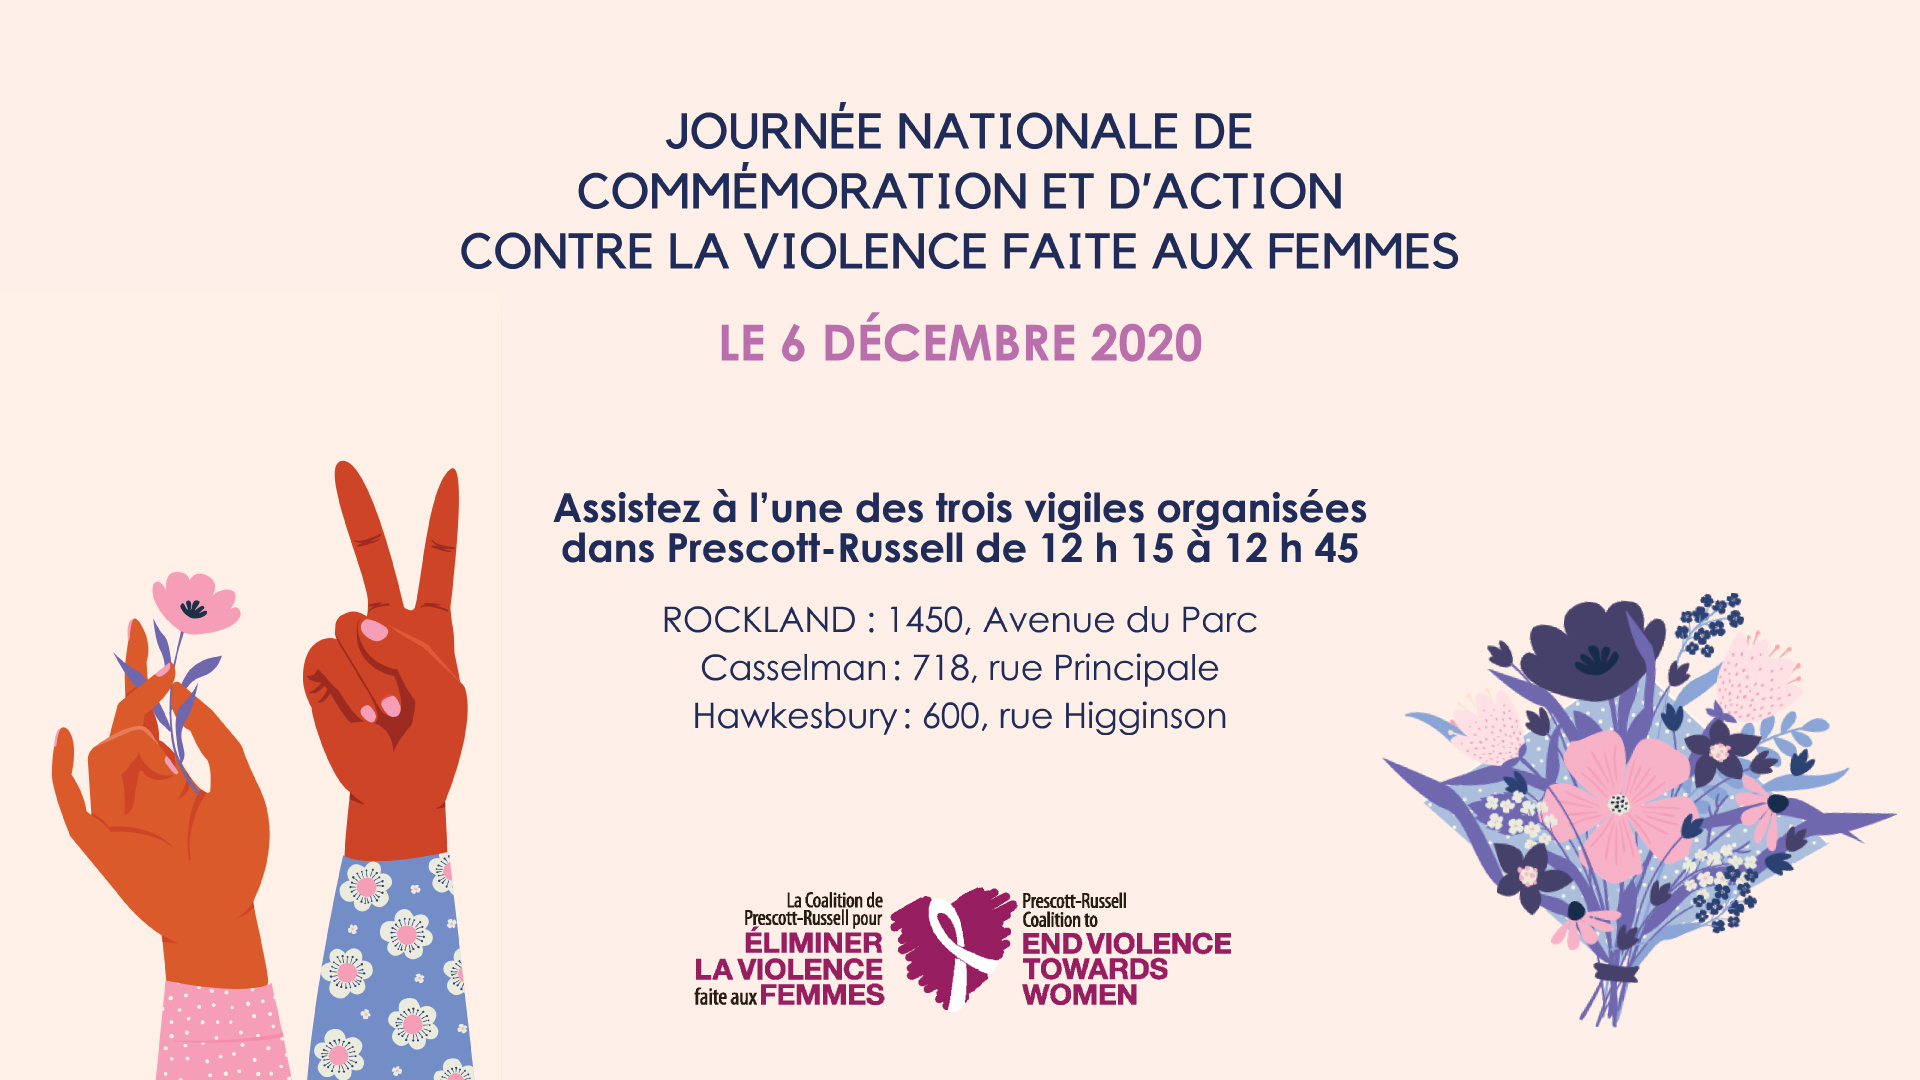 French poster for the National Day of Remembrance and Action on Violence Against Women